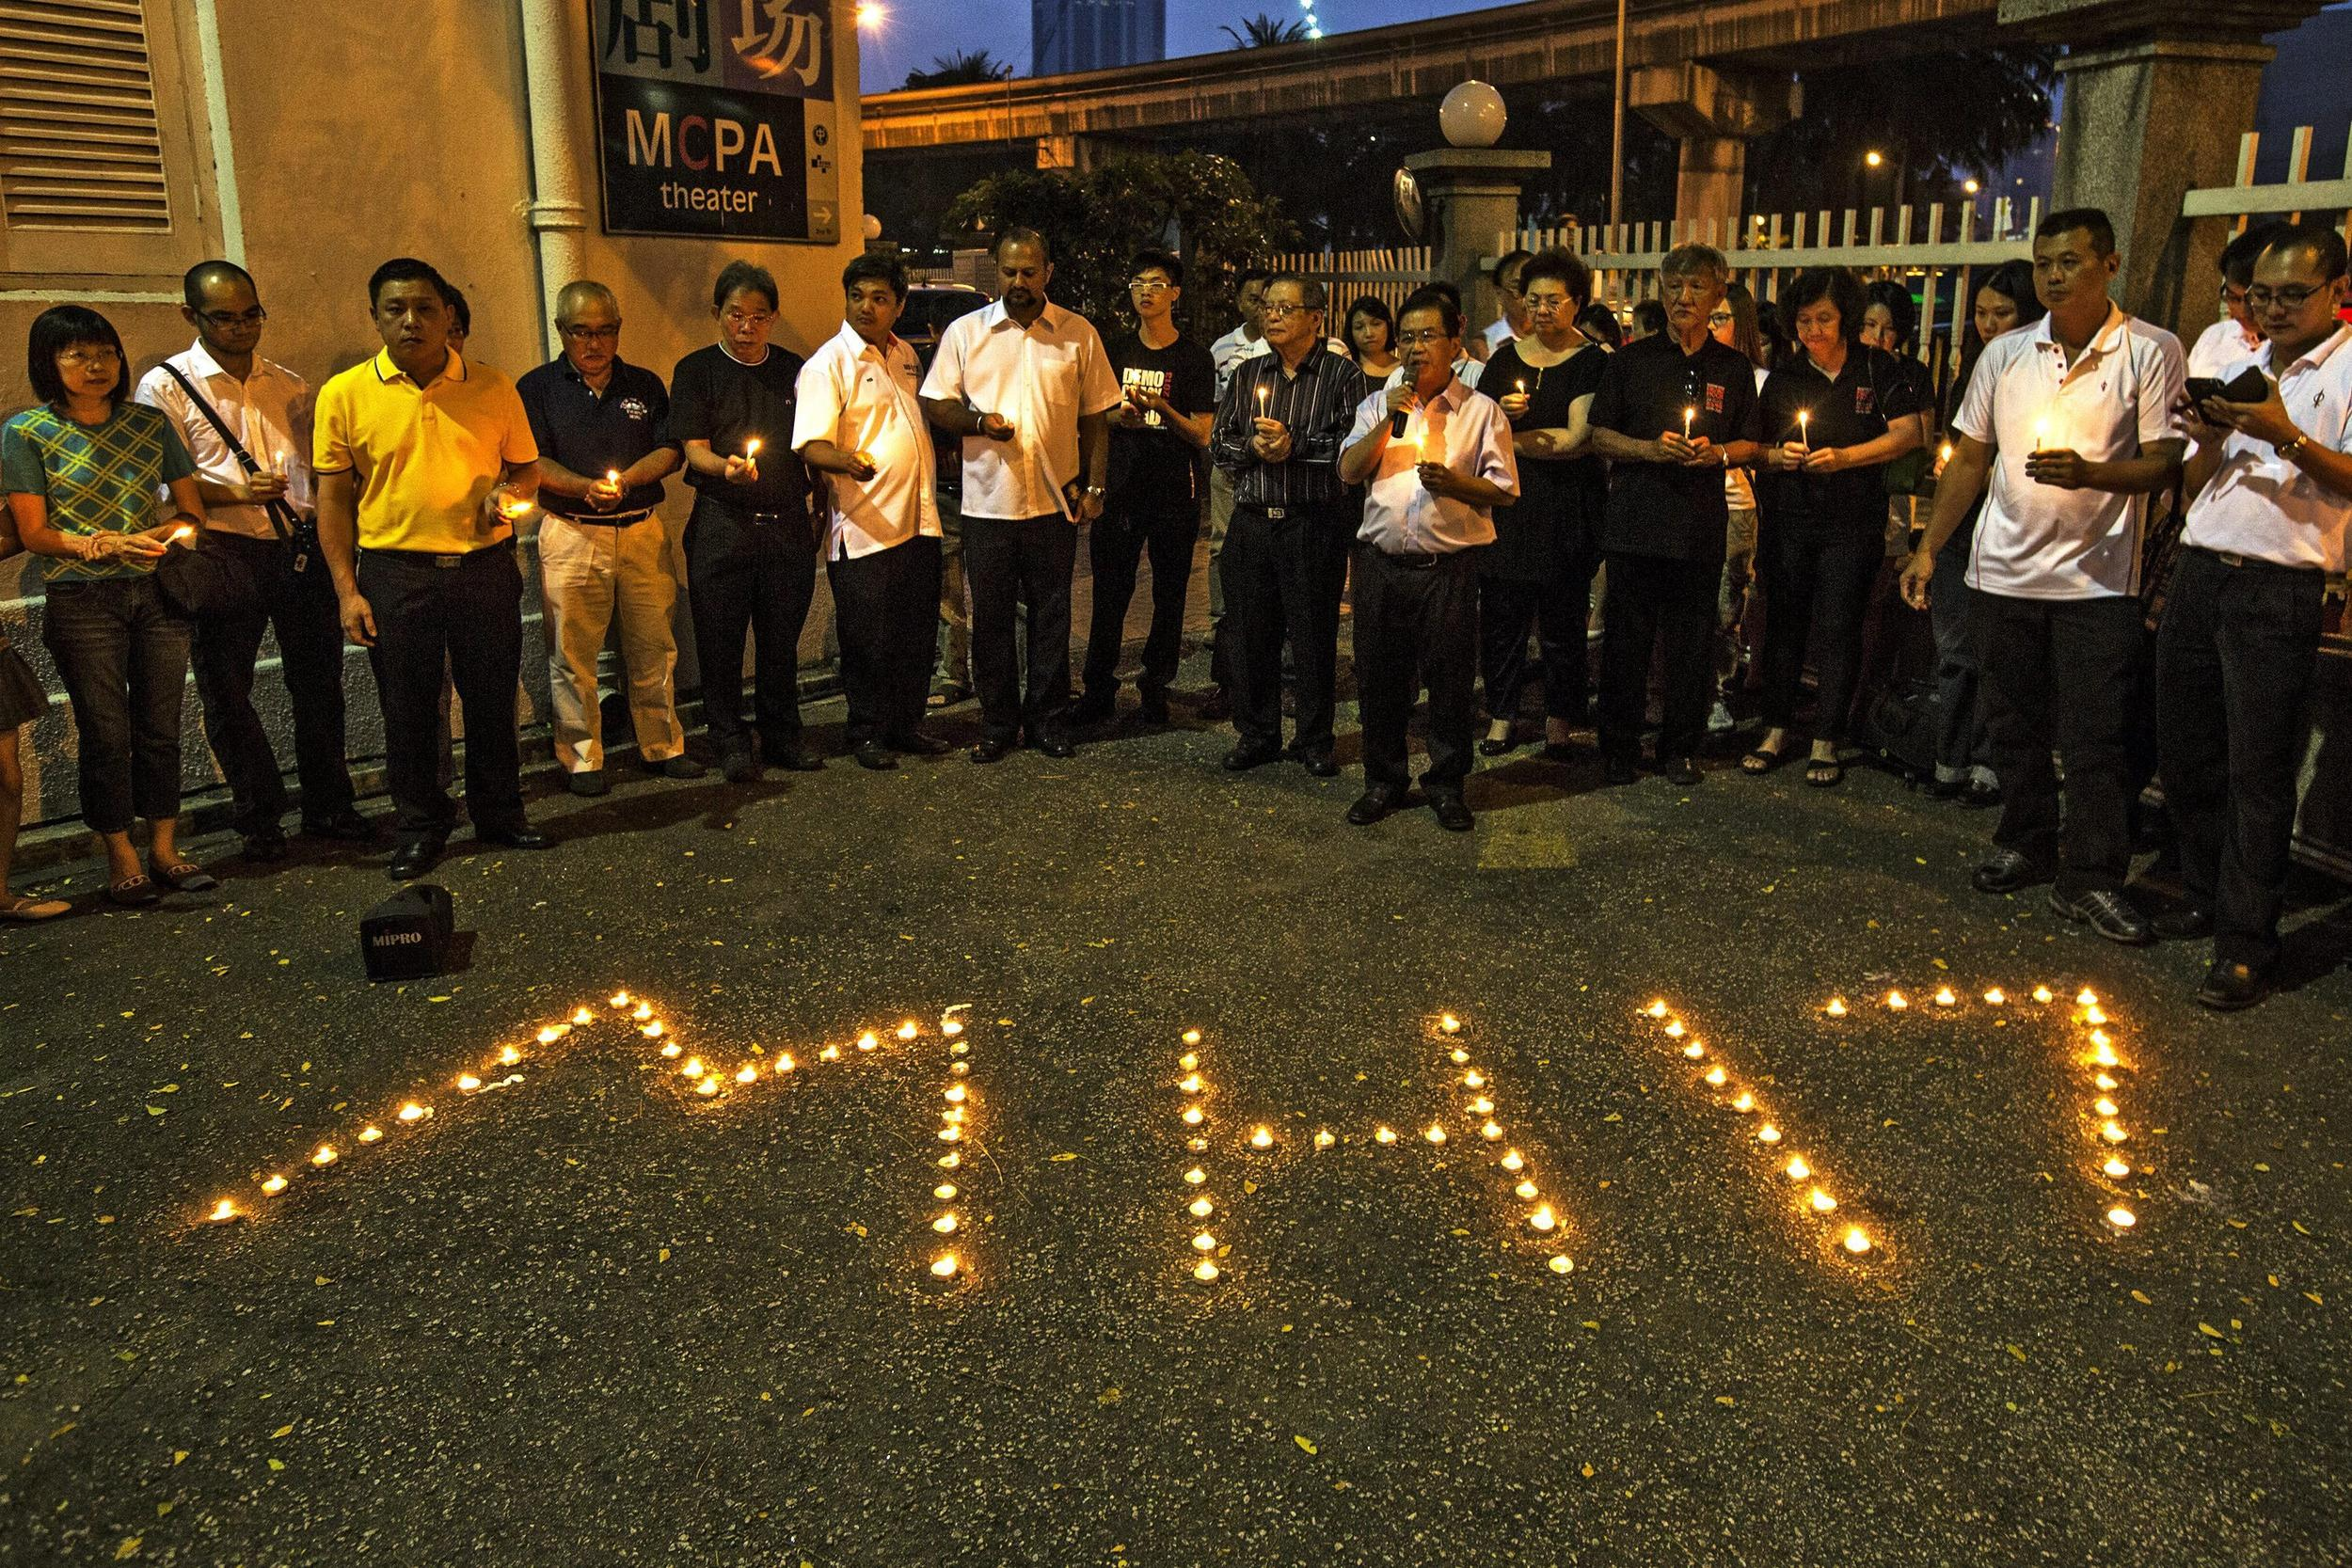 Image: Vigil for victims of MH17 attack in Kuala Lumpur, Malaysia, on Saturday